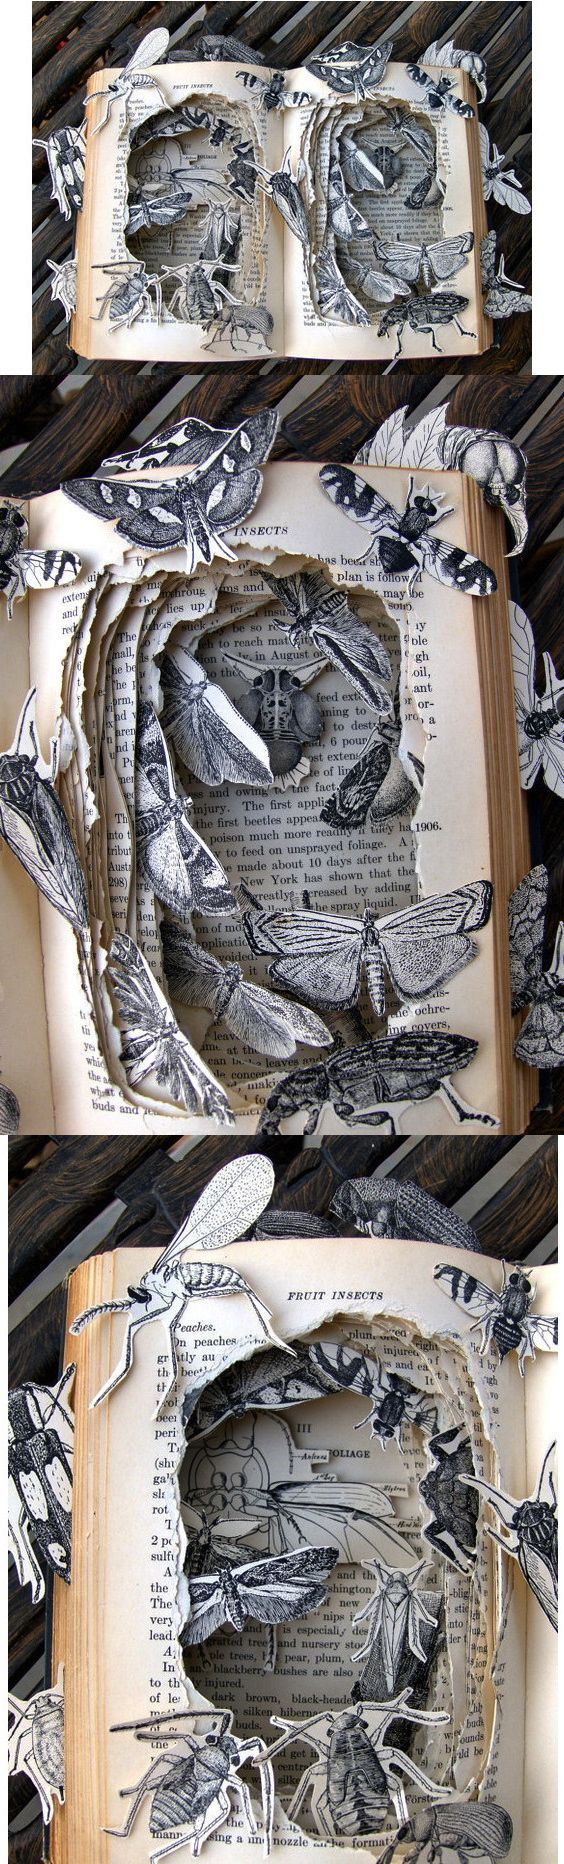 Wow amazing!!!!!! <3 Kelly Campbell, Mayberry's Insects, art, sculpture, paper craft, book art, book sculpture: